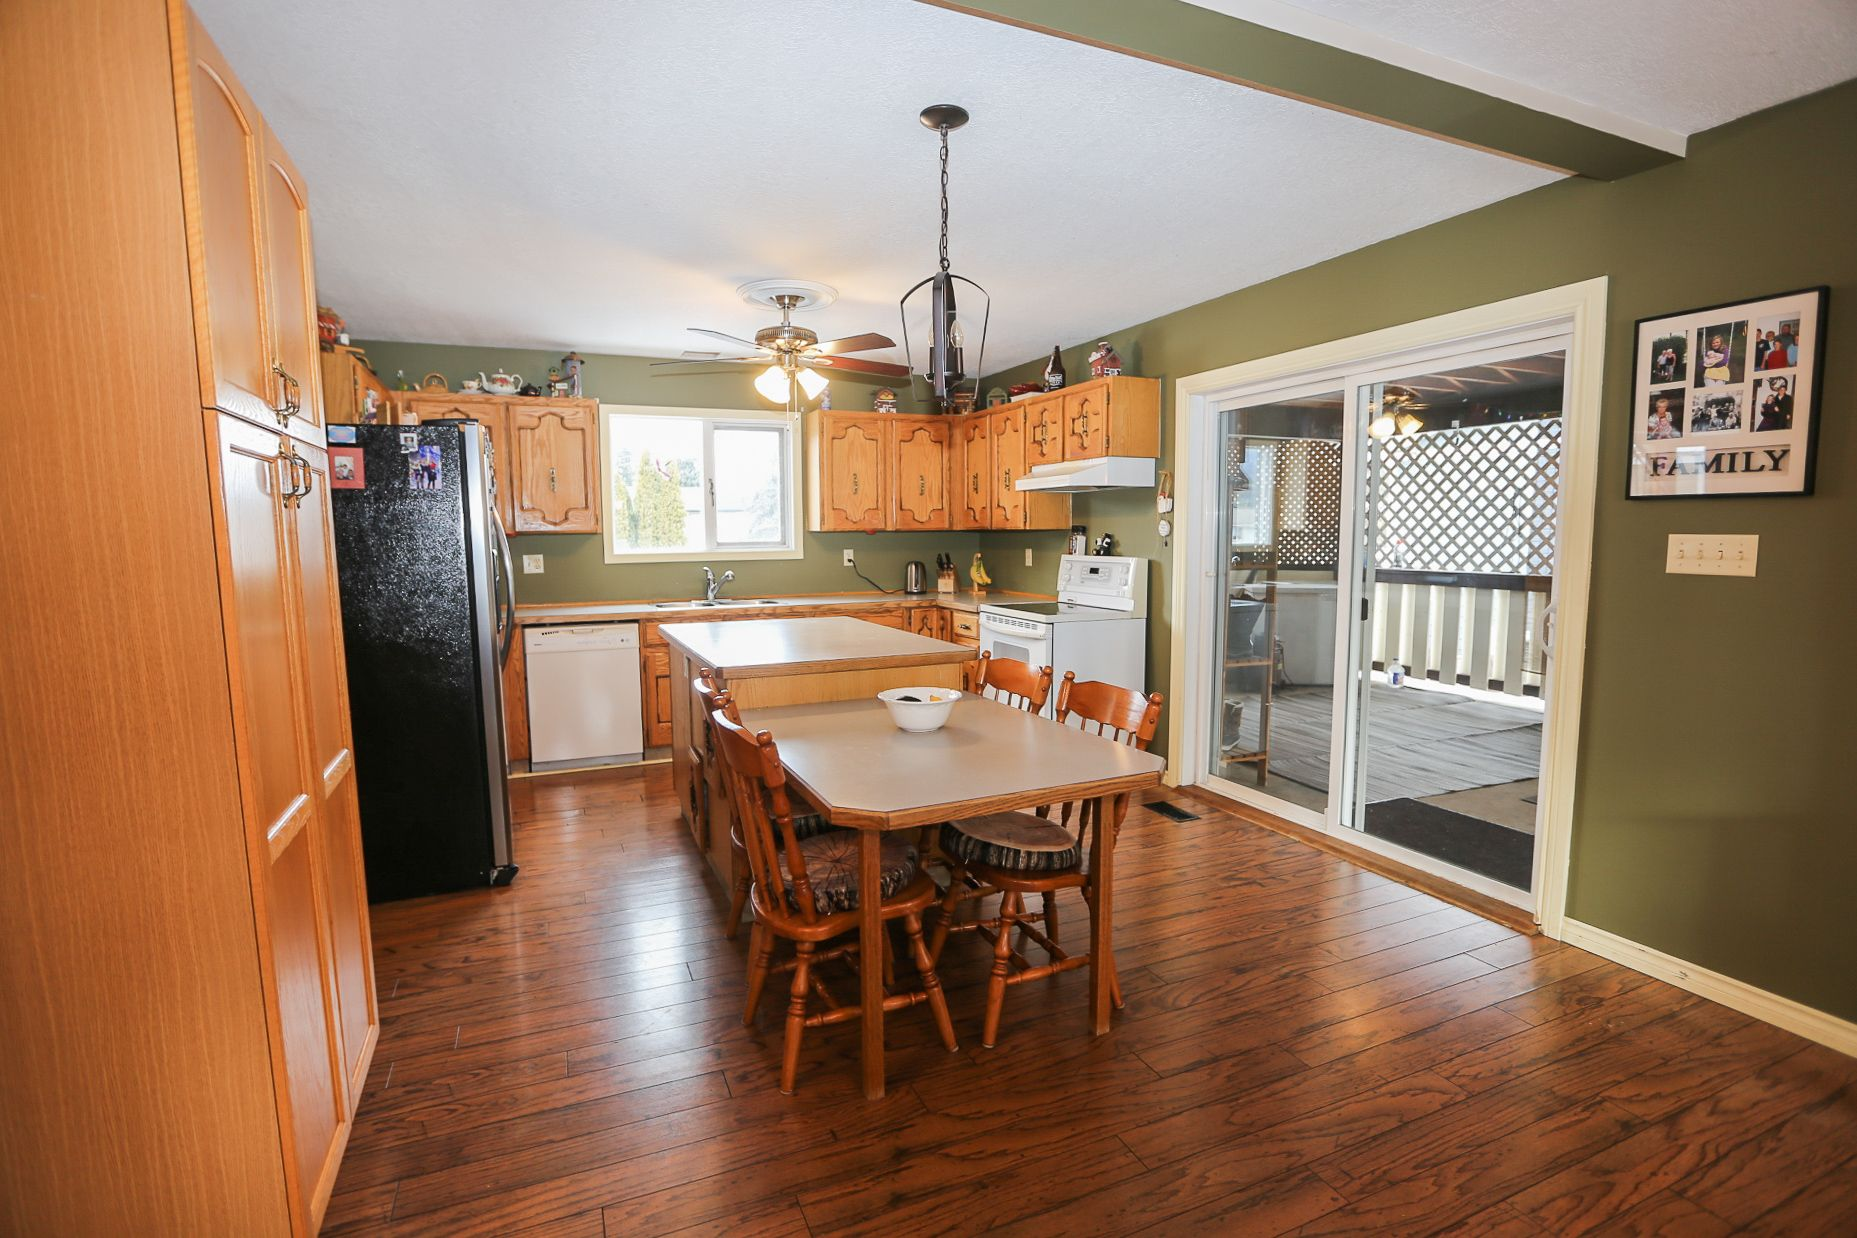 Photo 3: Photos: 434 ROBIN DRIVE: BARRIERE House for sale (NORTH EAST)  : MLS®# 160553